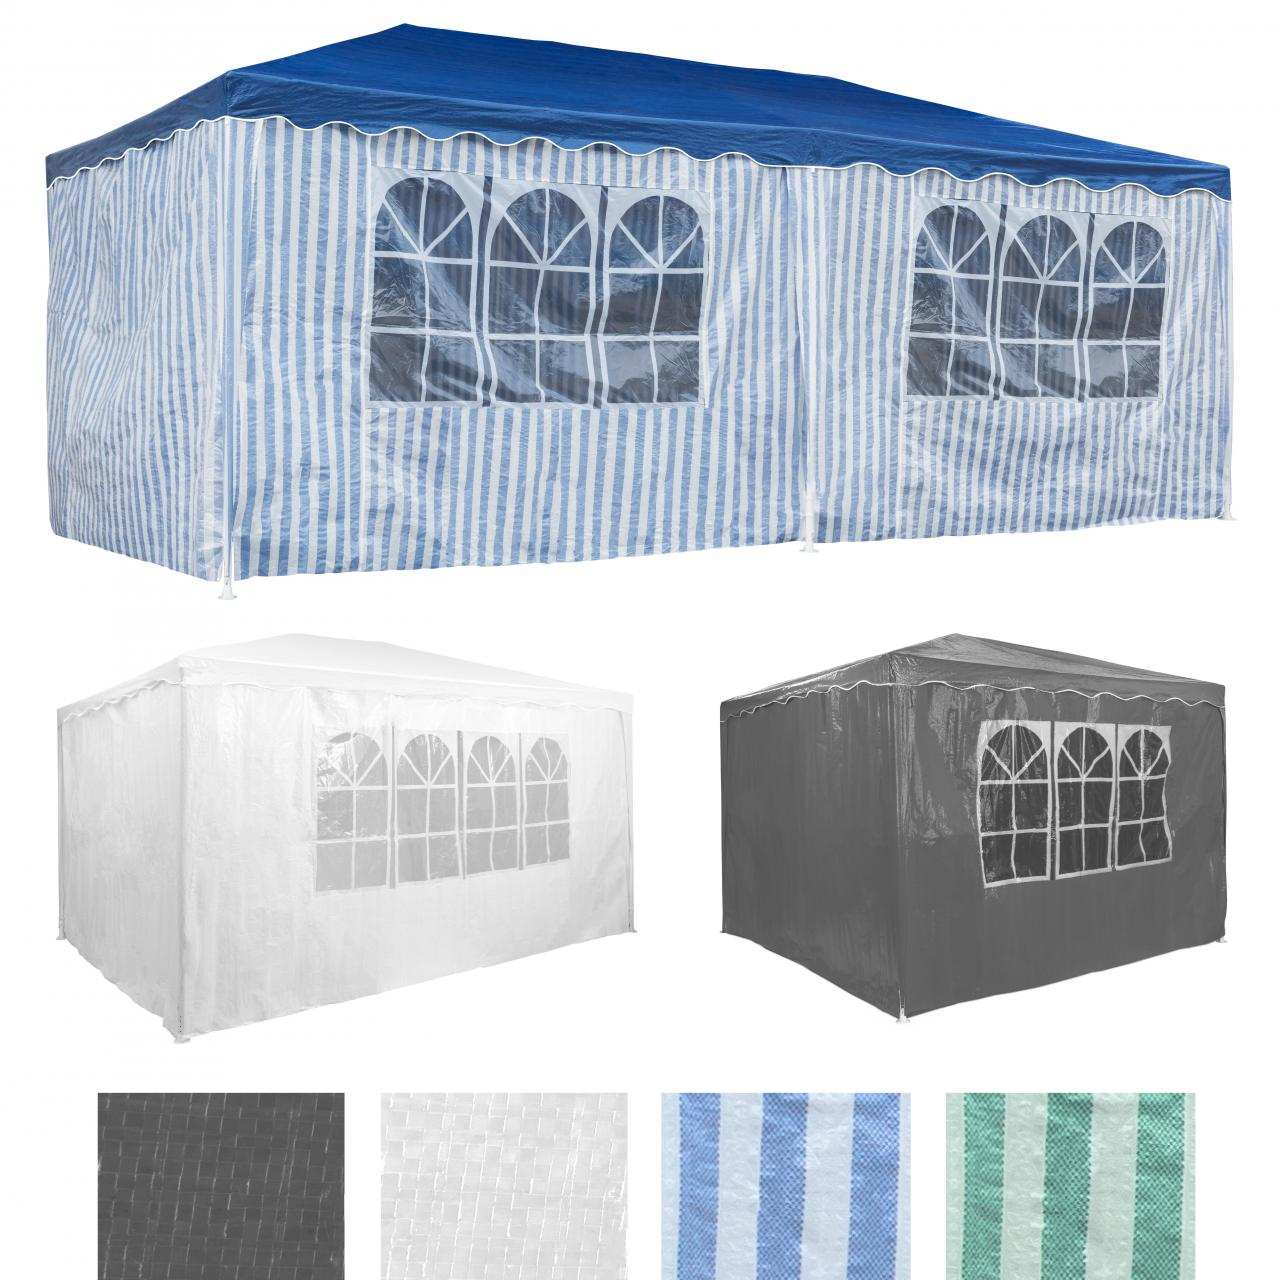 partyzelt in verschiedenen gr en festzelt gartenzelt bierzelt pavillon zelt ebay. Black Bedroom Furniture Sets. Home Design Ideas